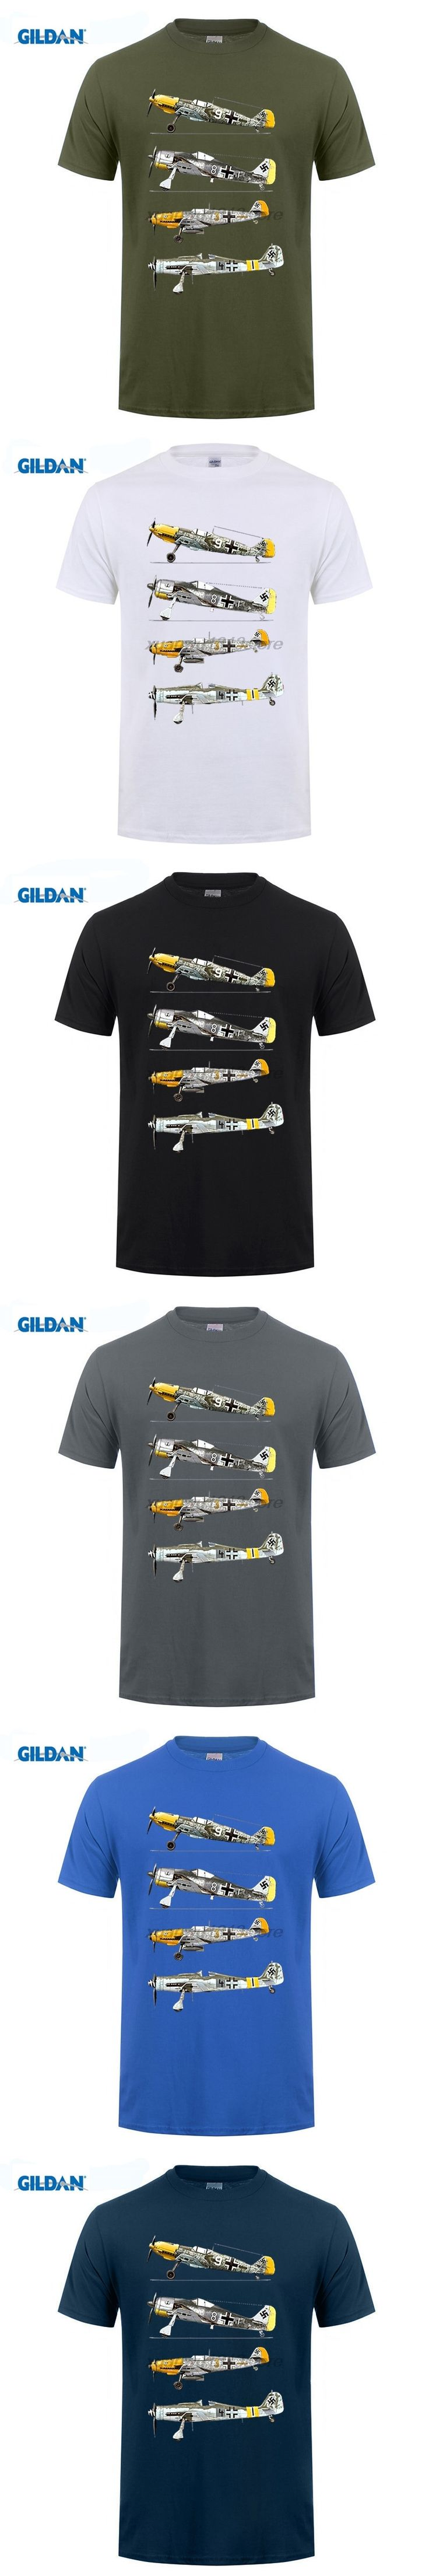 GILDAN Aircraft Man T Shirt Erich Hartman Casual Custom Made Loose Tops Men's O Neck Tshirts Dad Unique Tee Shirt Airplane Pilot